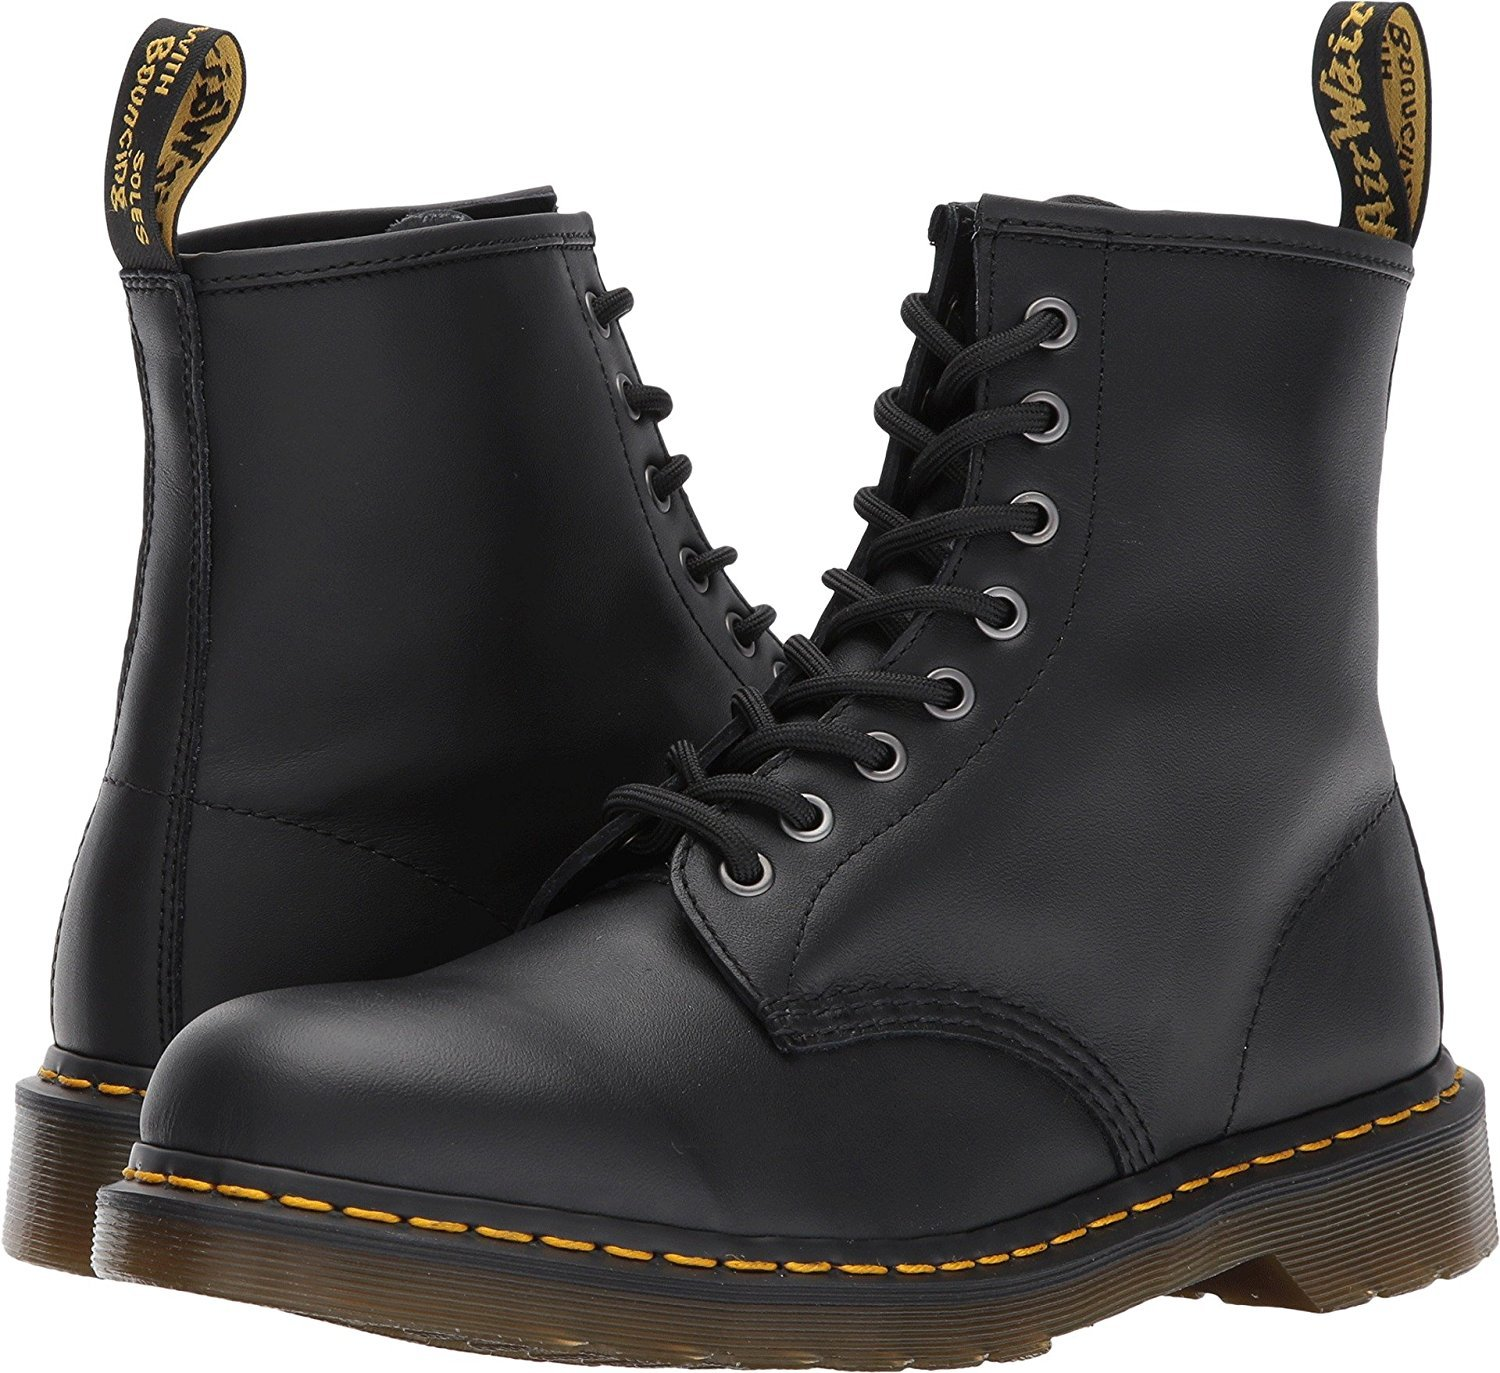 Dr. Martens Men's 1460 Combat Women/7.5 Boot, 8.5 B(M) US Women/7.5 Combat D(M) US Men B01N9XG5FR 5 M UK|Black Softy T 048c52